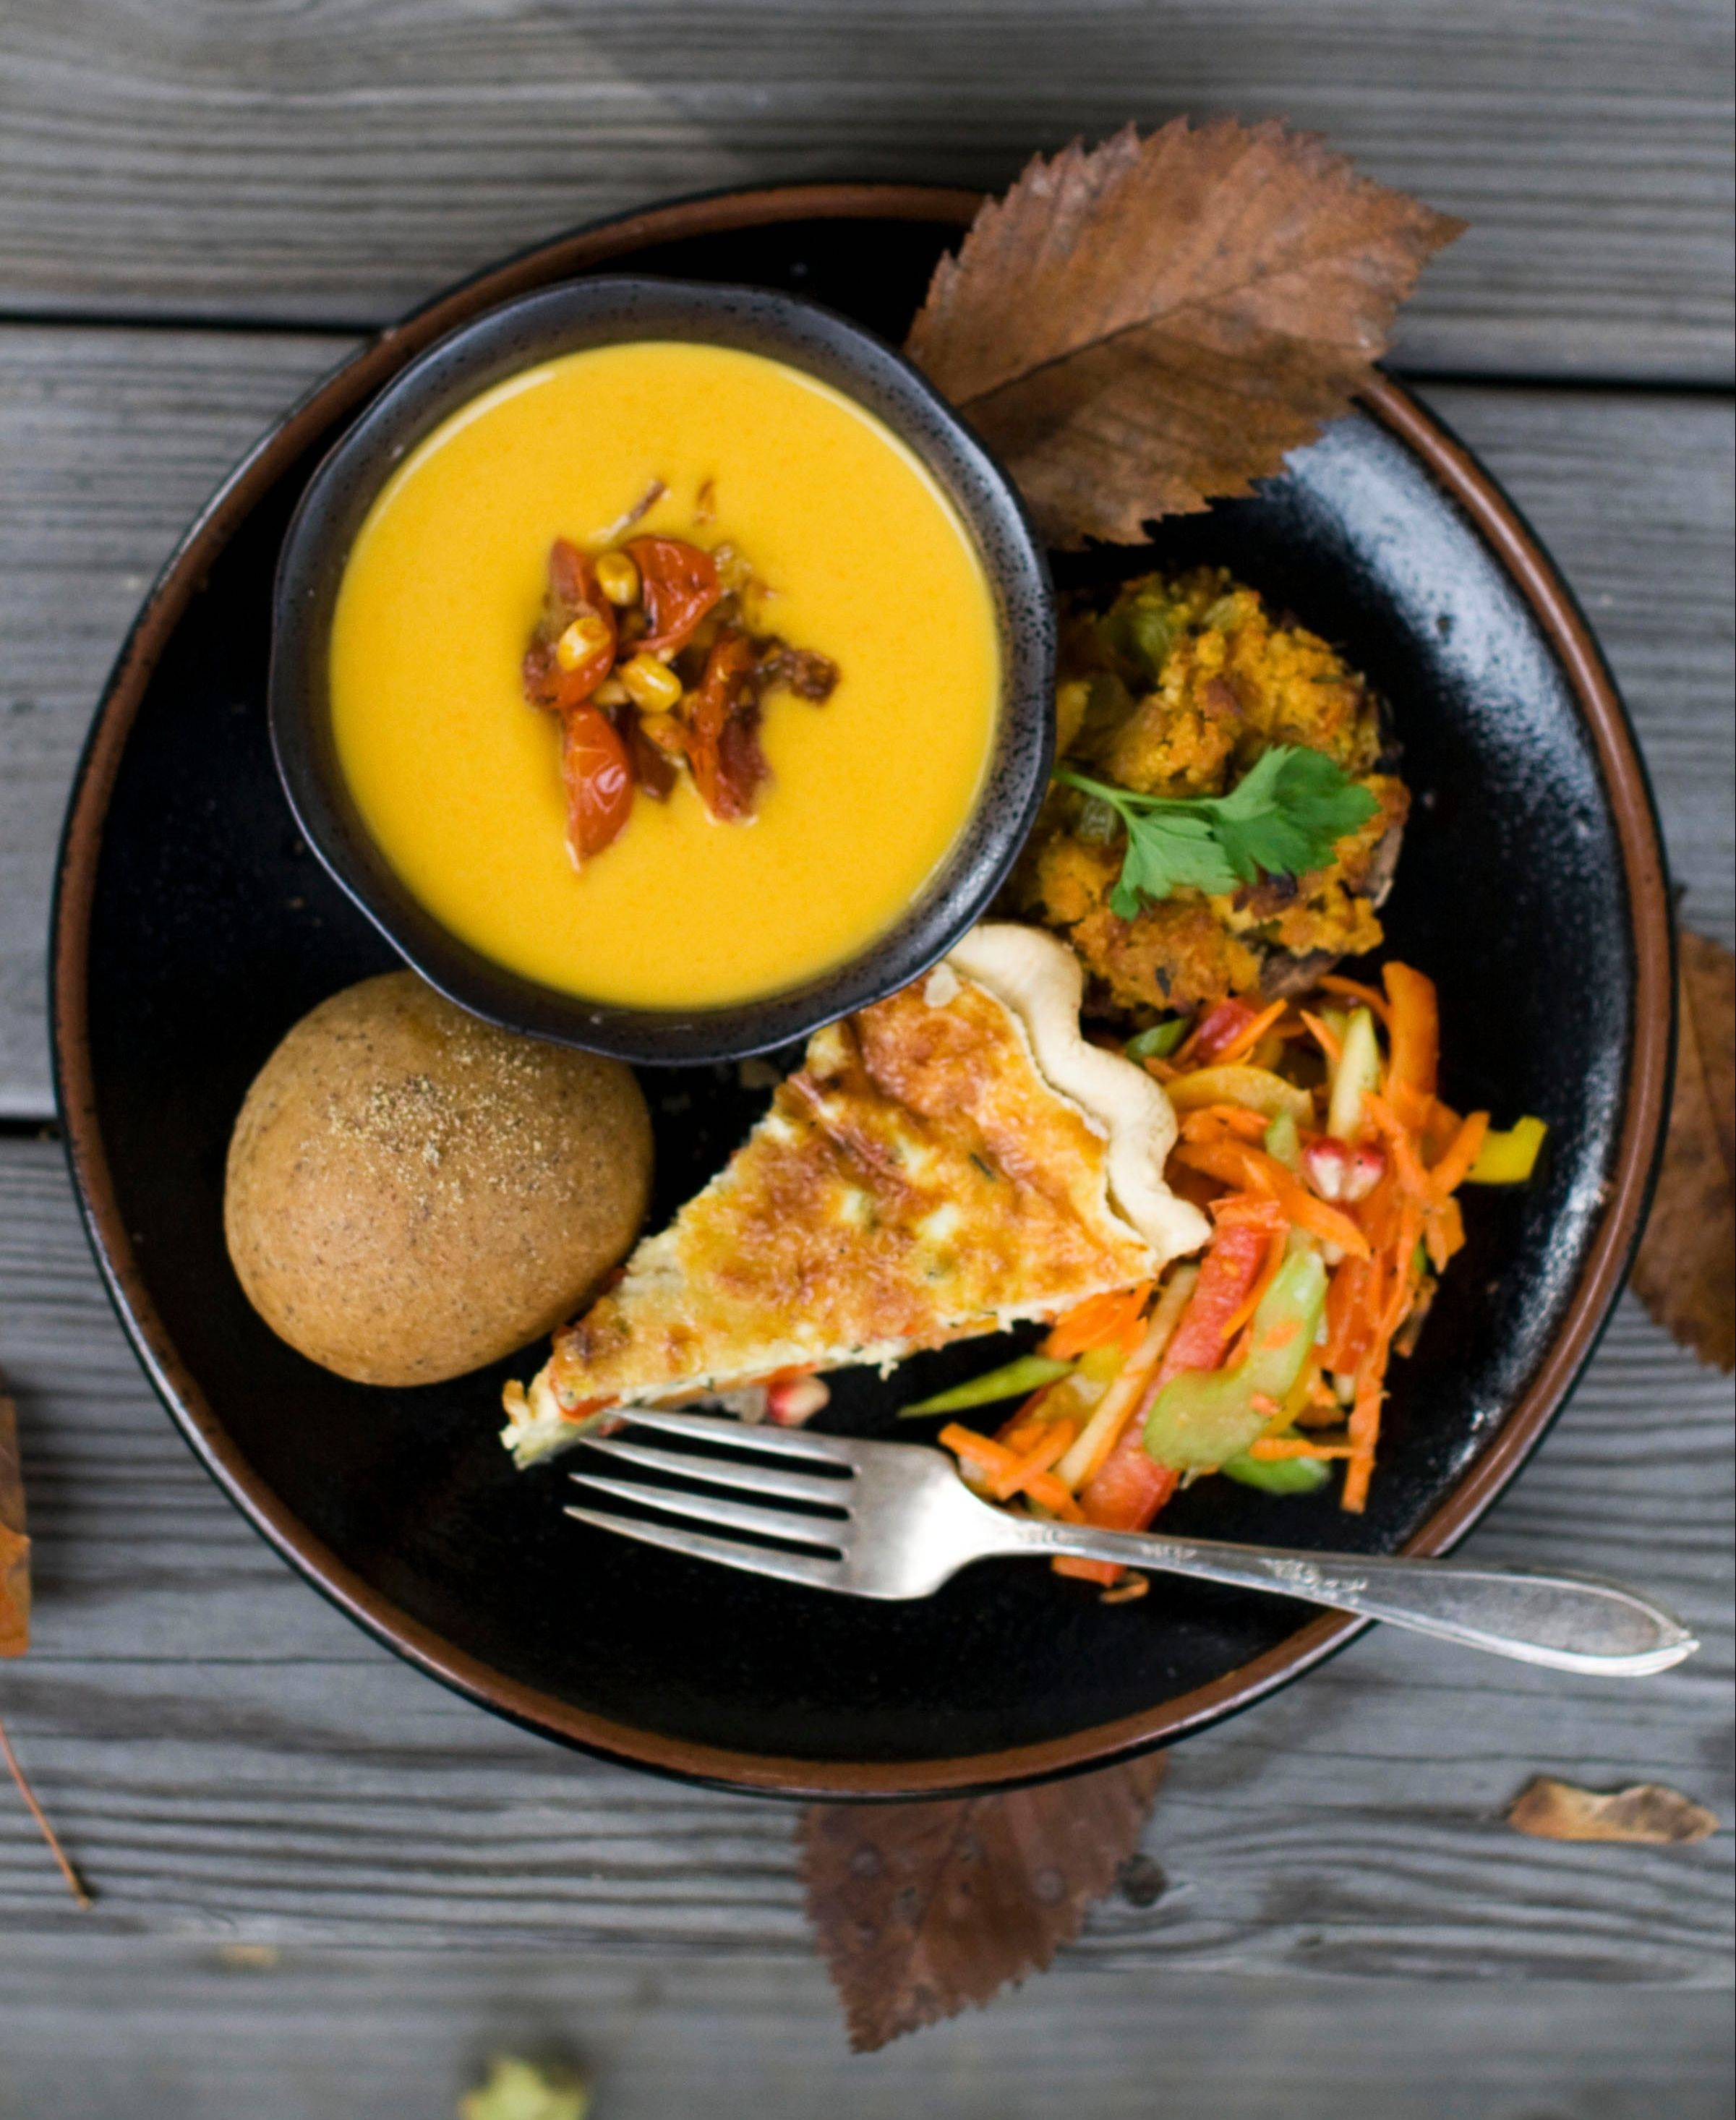 You won't miss turkey with hearty fare like red bell pepper and apple slaw, flax rolls, roasted vegetable quiche, corn bread stuffing mushrooms and squash bisque on the Thanksgiving table.